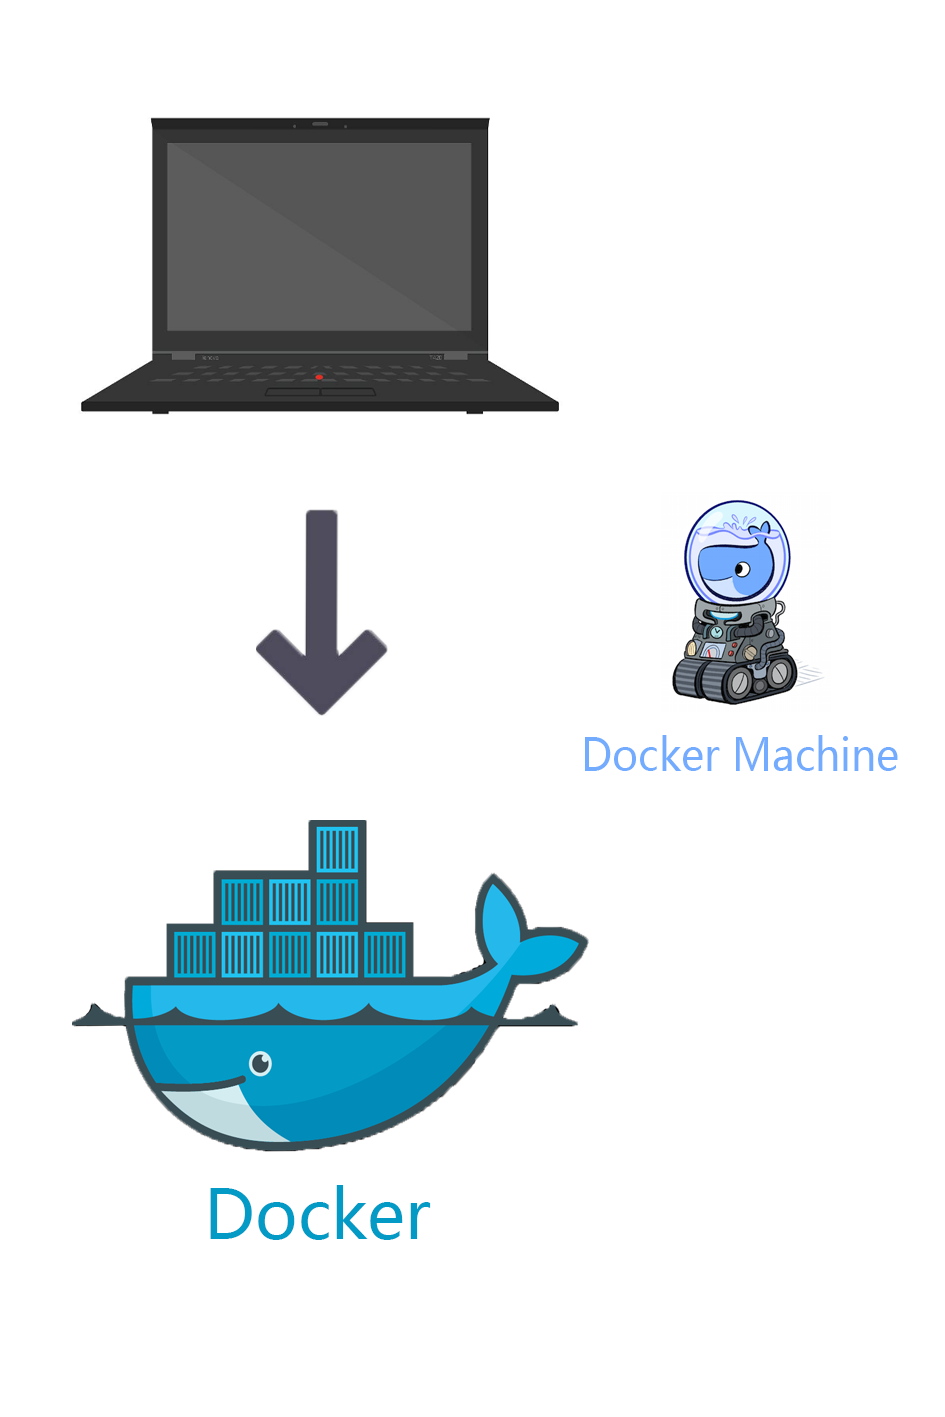 DockerMachineToDocker.png